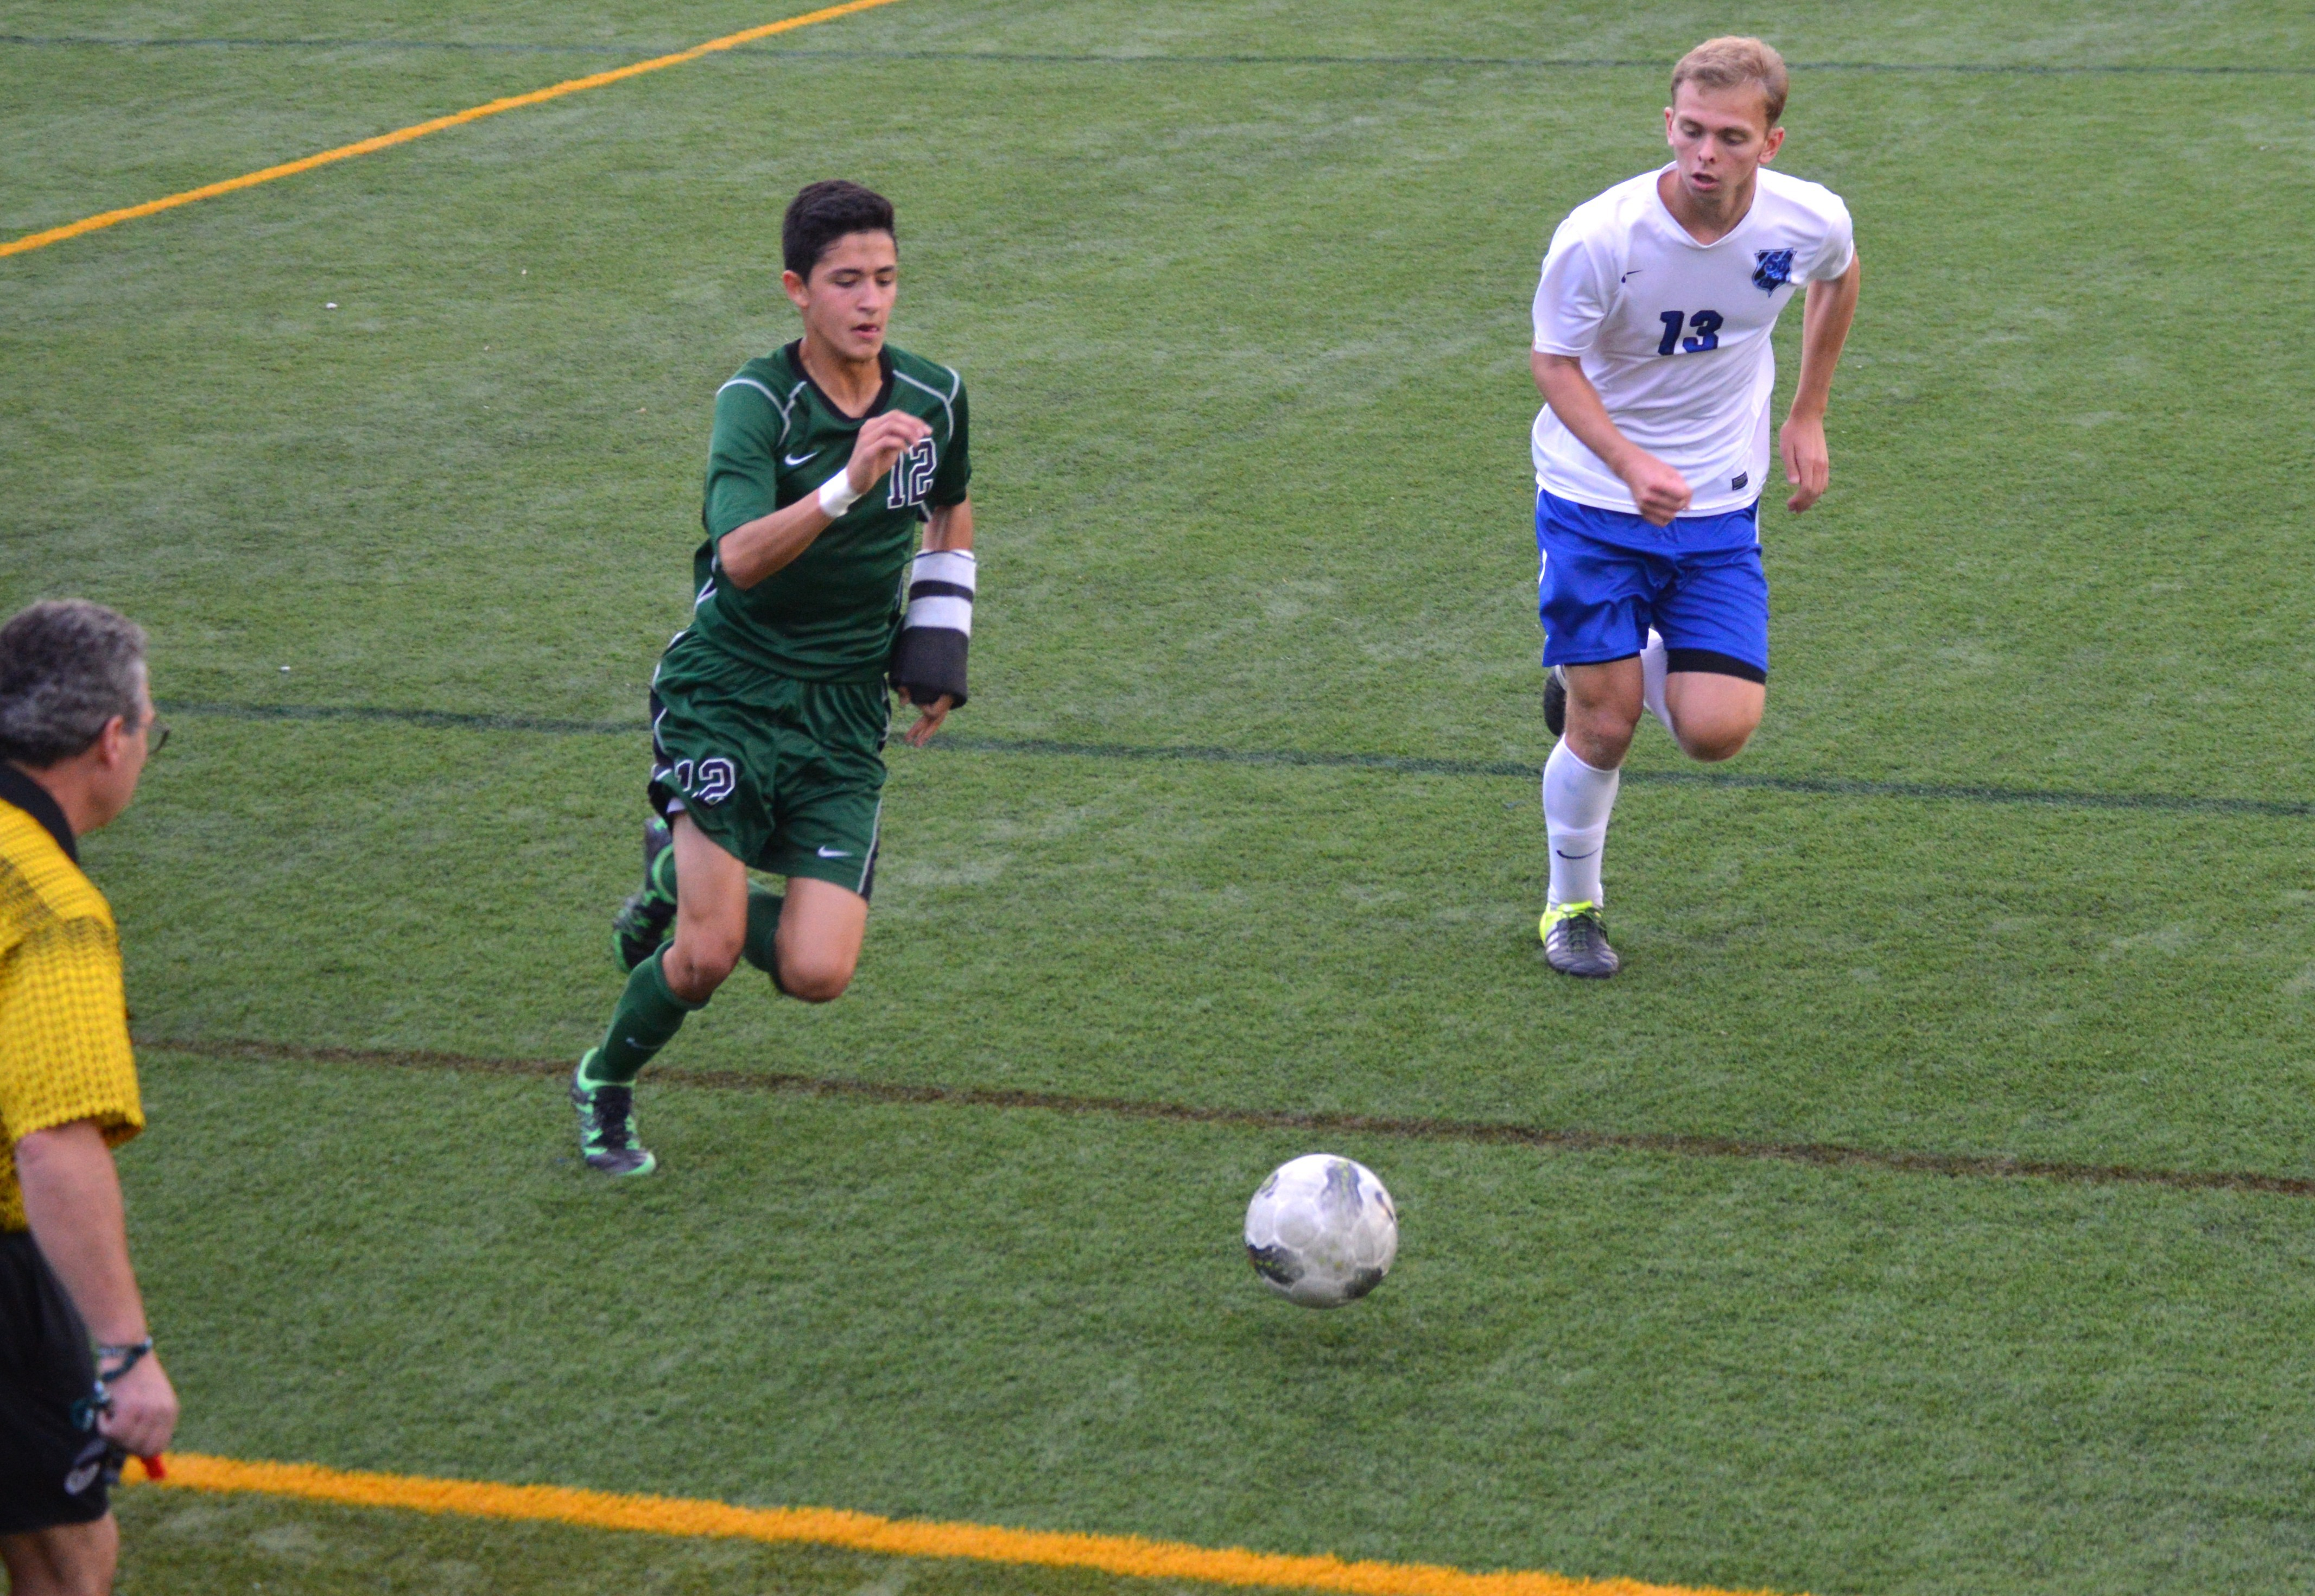 f3ad82a068dab08523bd_Michael_Echeverria_scored_the_only_goal_for_St._Joe_s.JPG